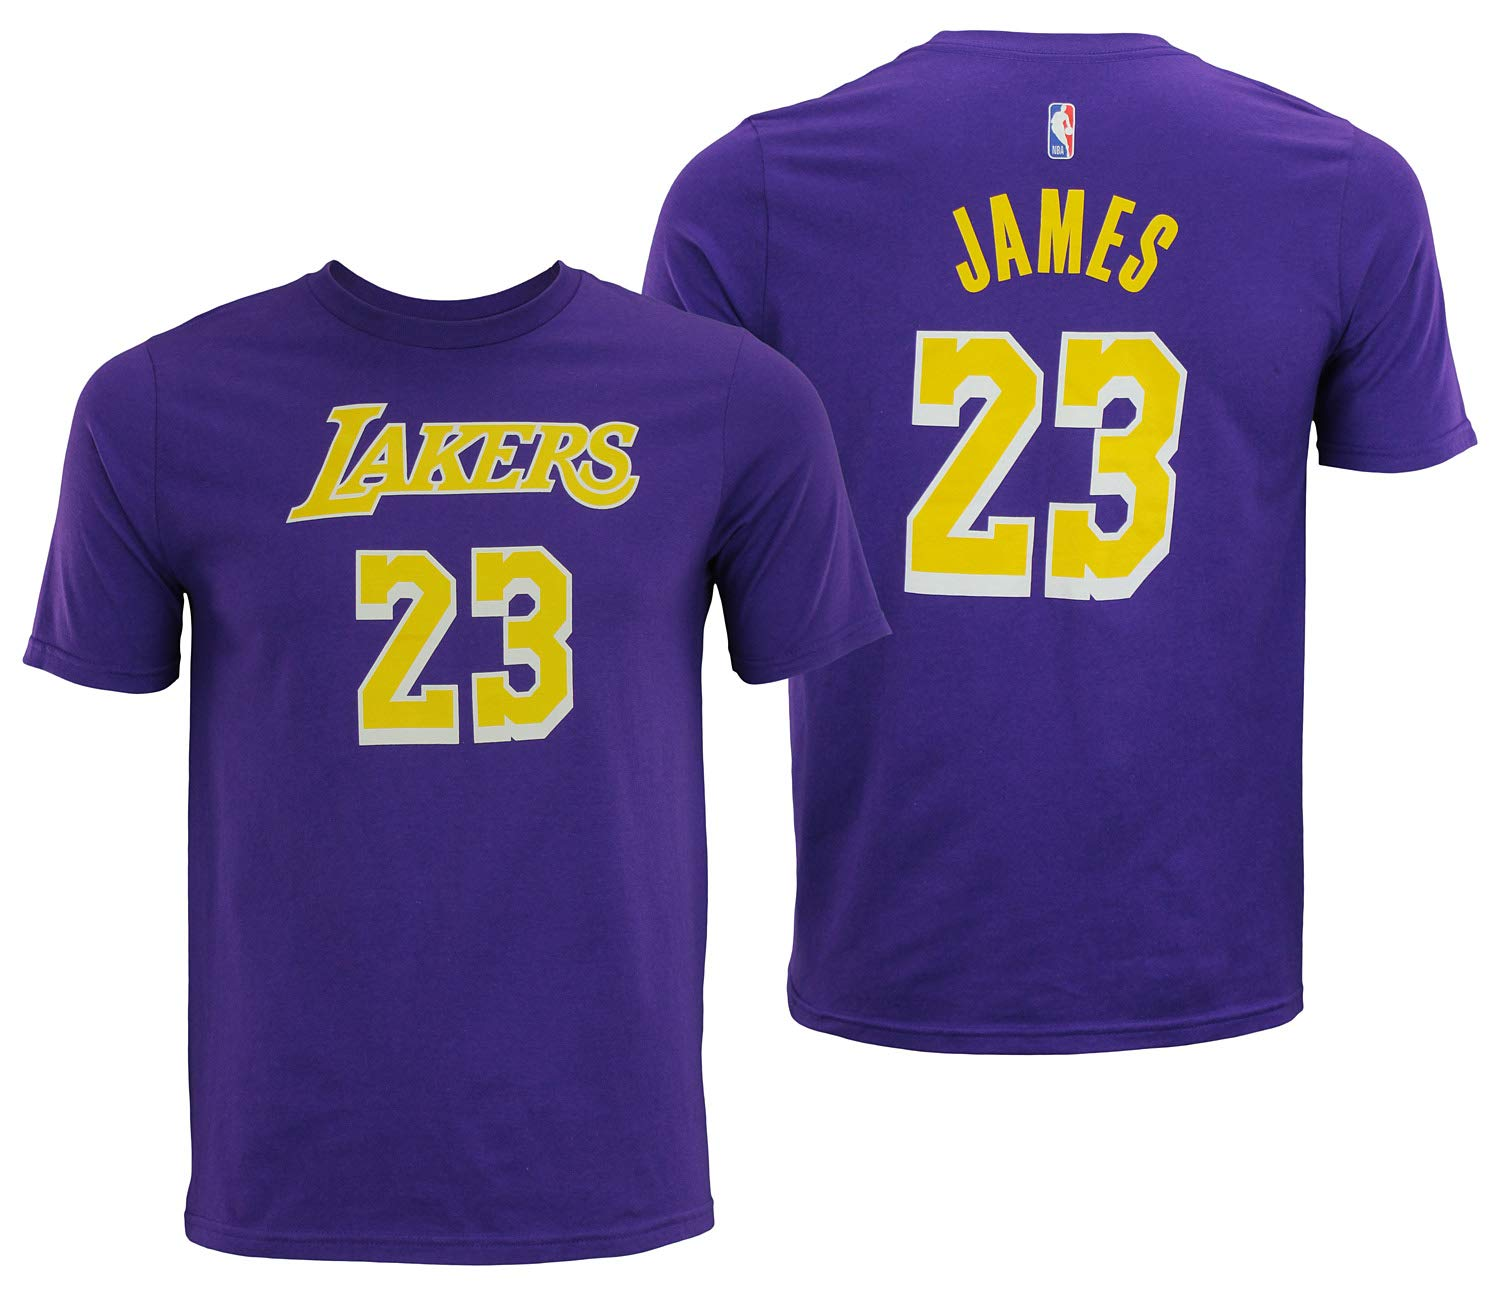 release date 615bd 7a9e0 NBA Youth Los Angeles Lakers Lebron James Player Tee, Pick A Color